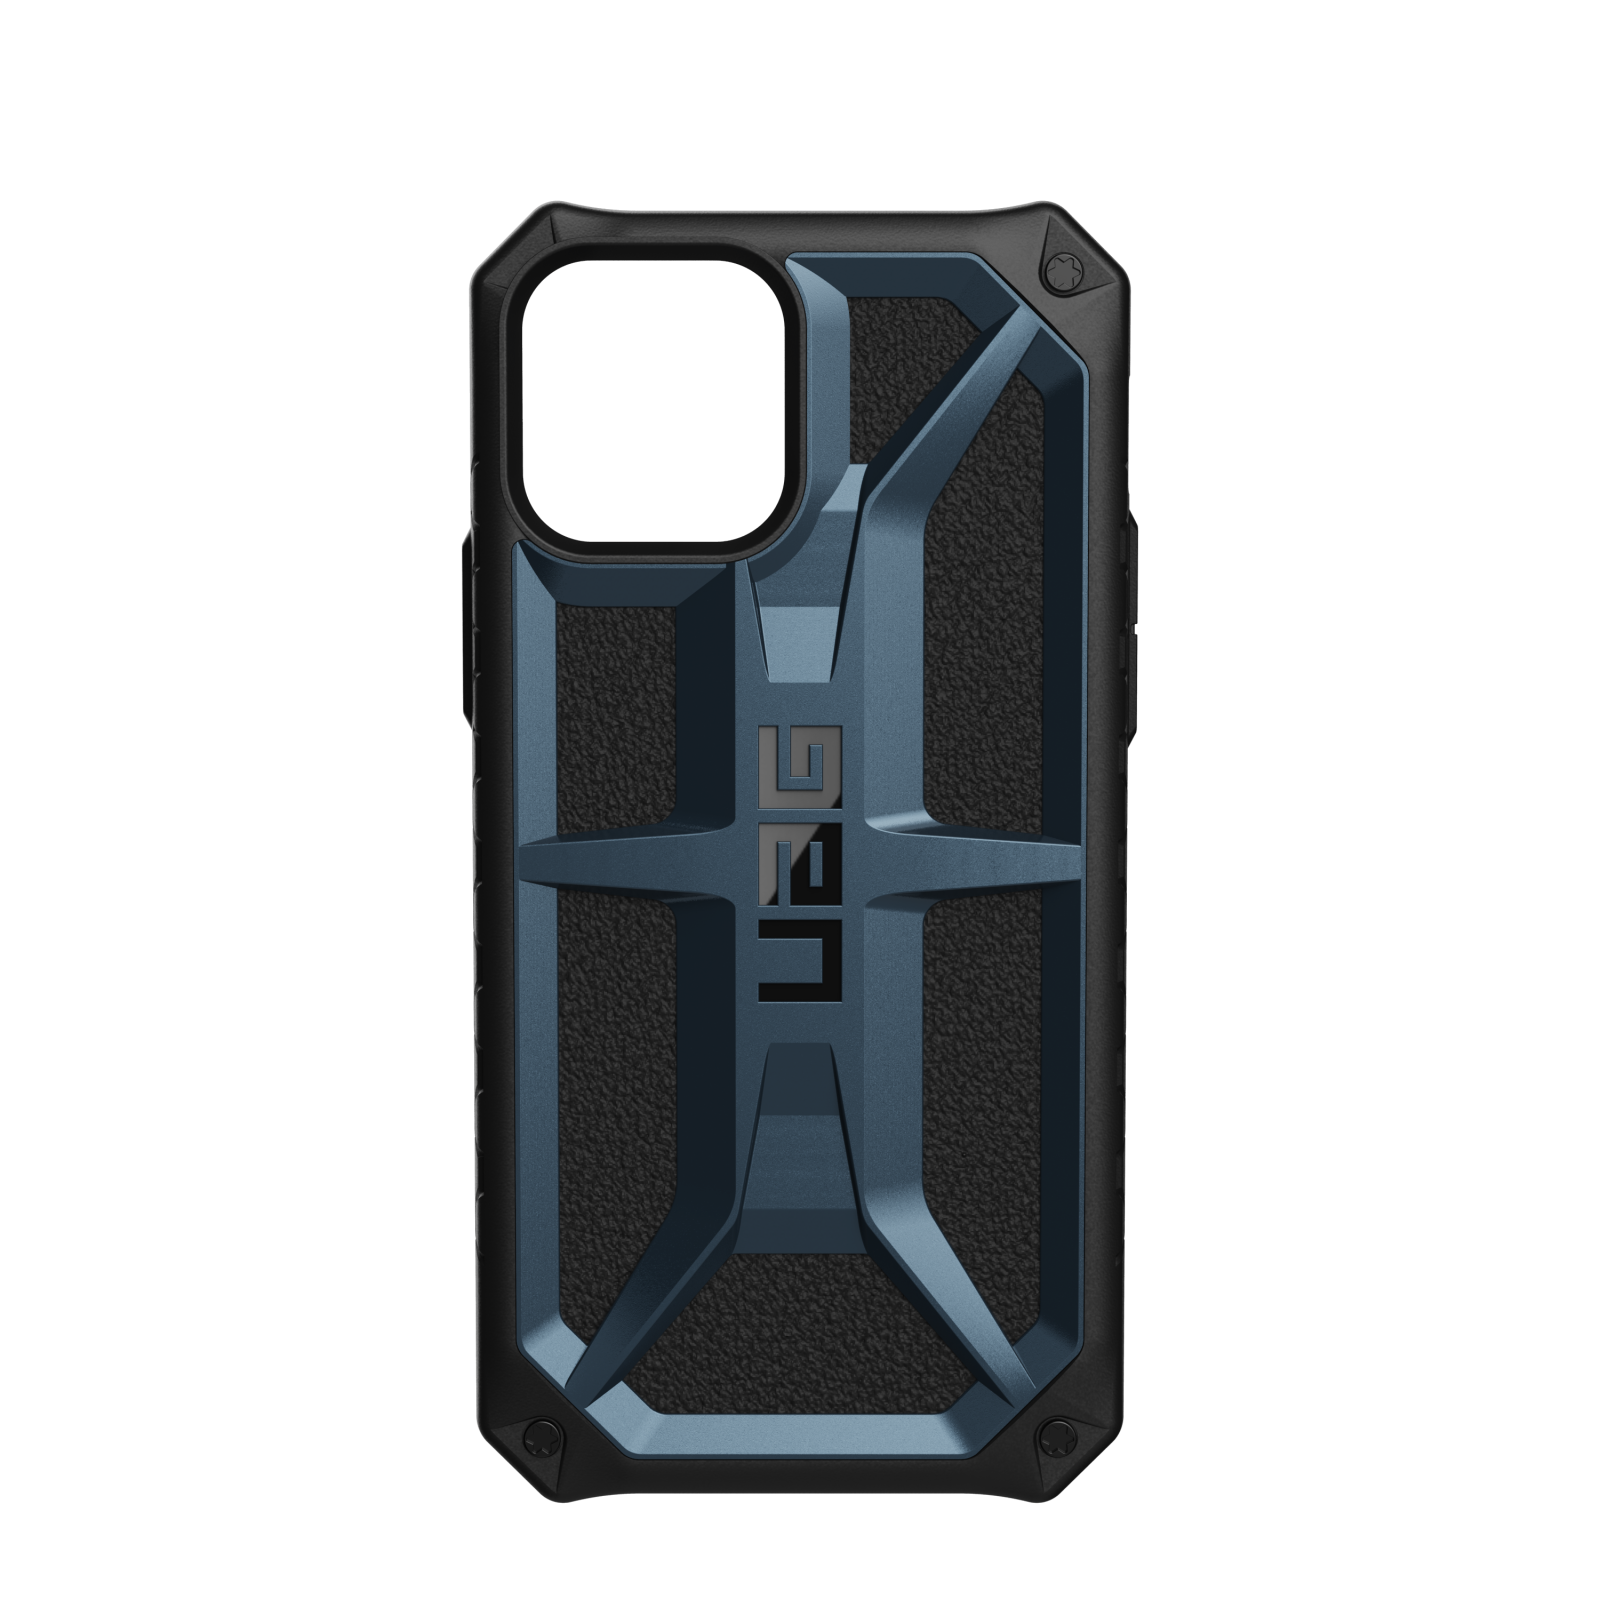 ỐP LƯNG UAG MONARCH CHO IPHONE 12 & 12 Pro [6.1-INCH] - Mallard